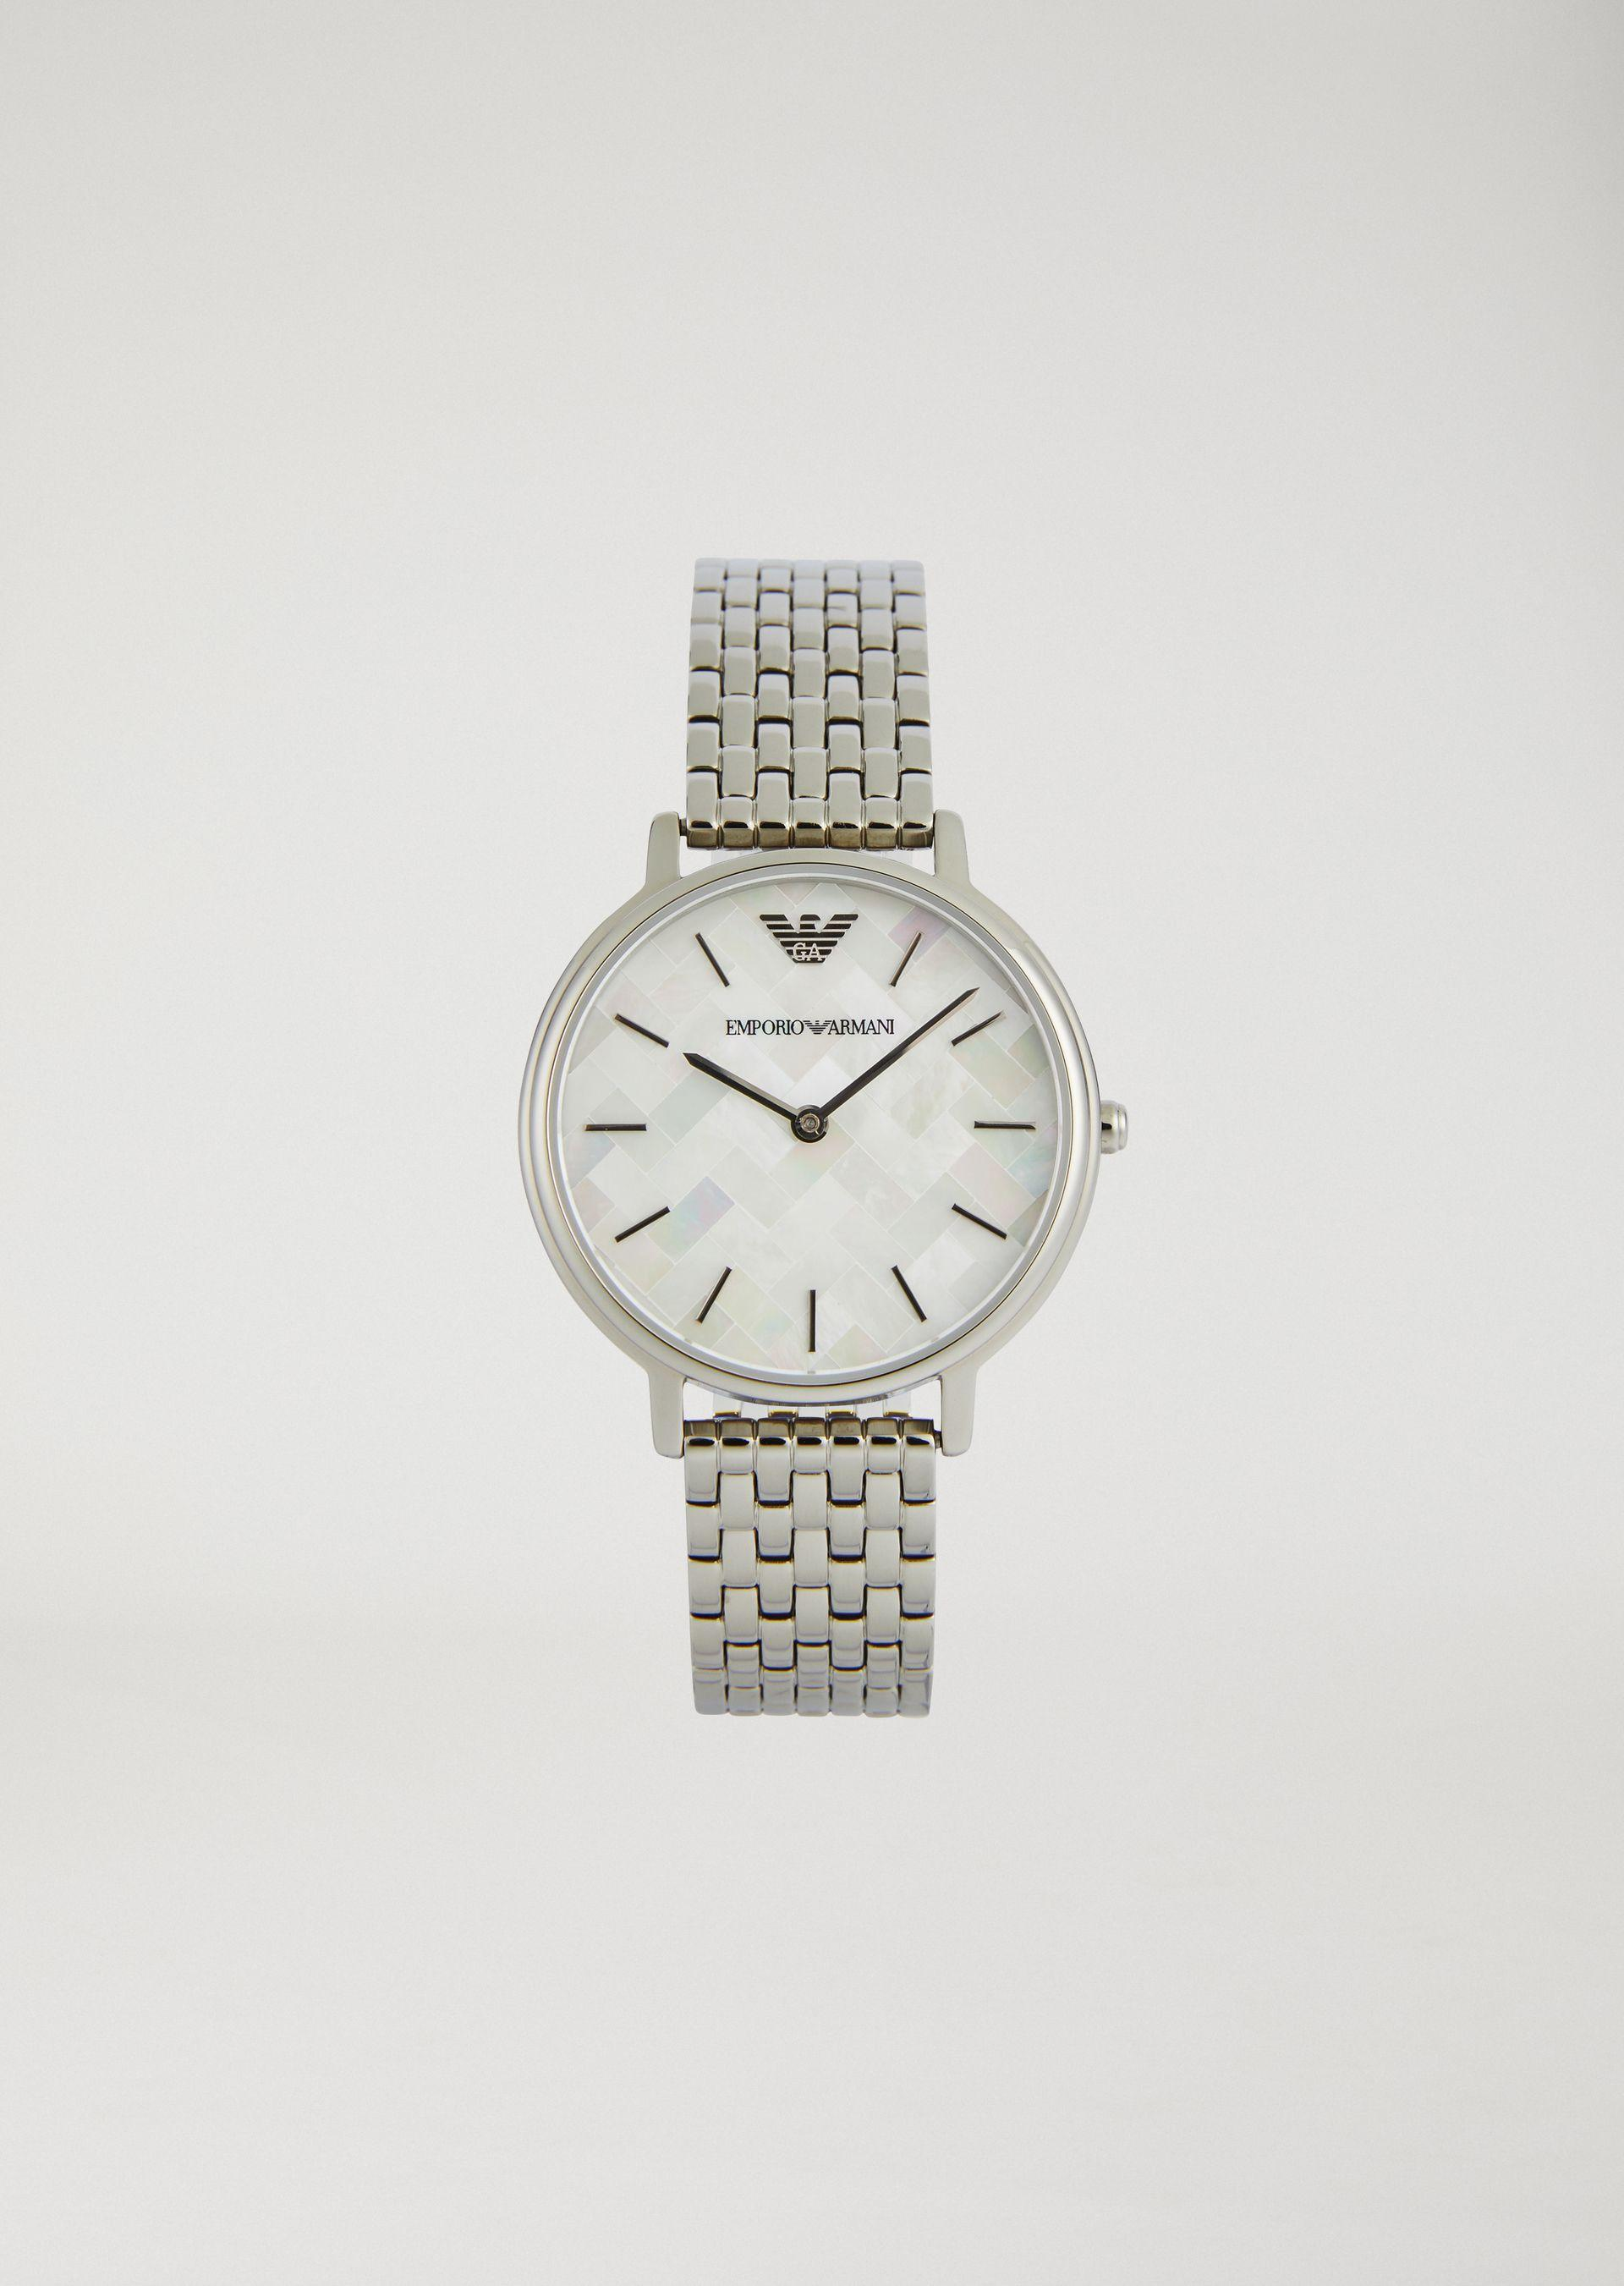 Emporio Armani Steel Strap Watches - Item 50208002 In Silver